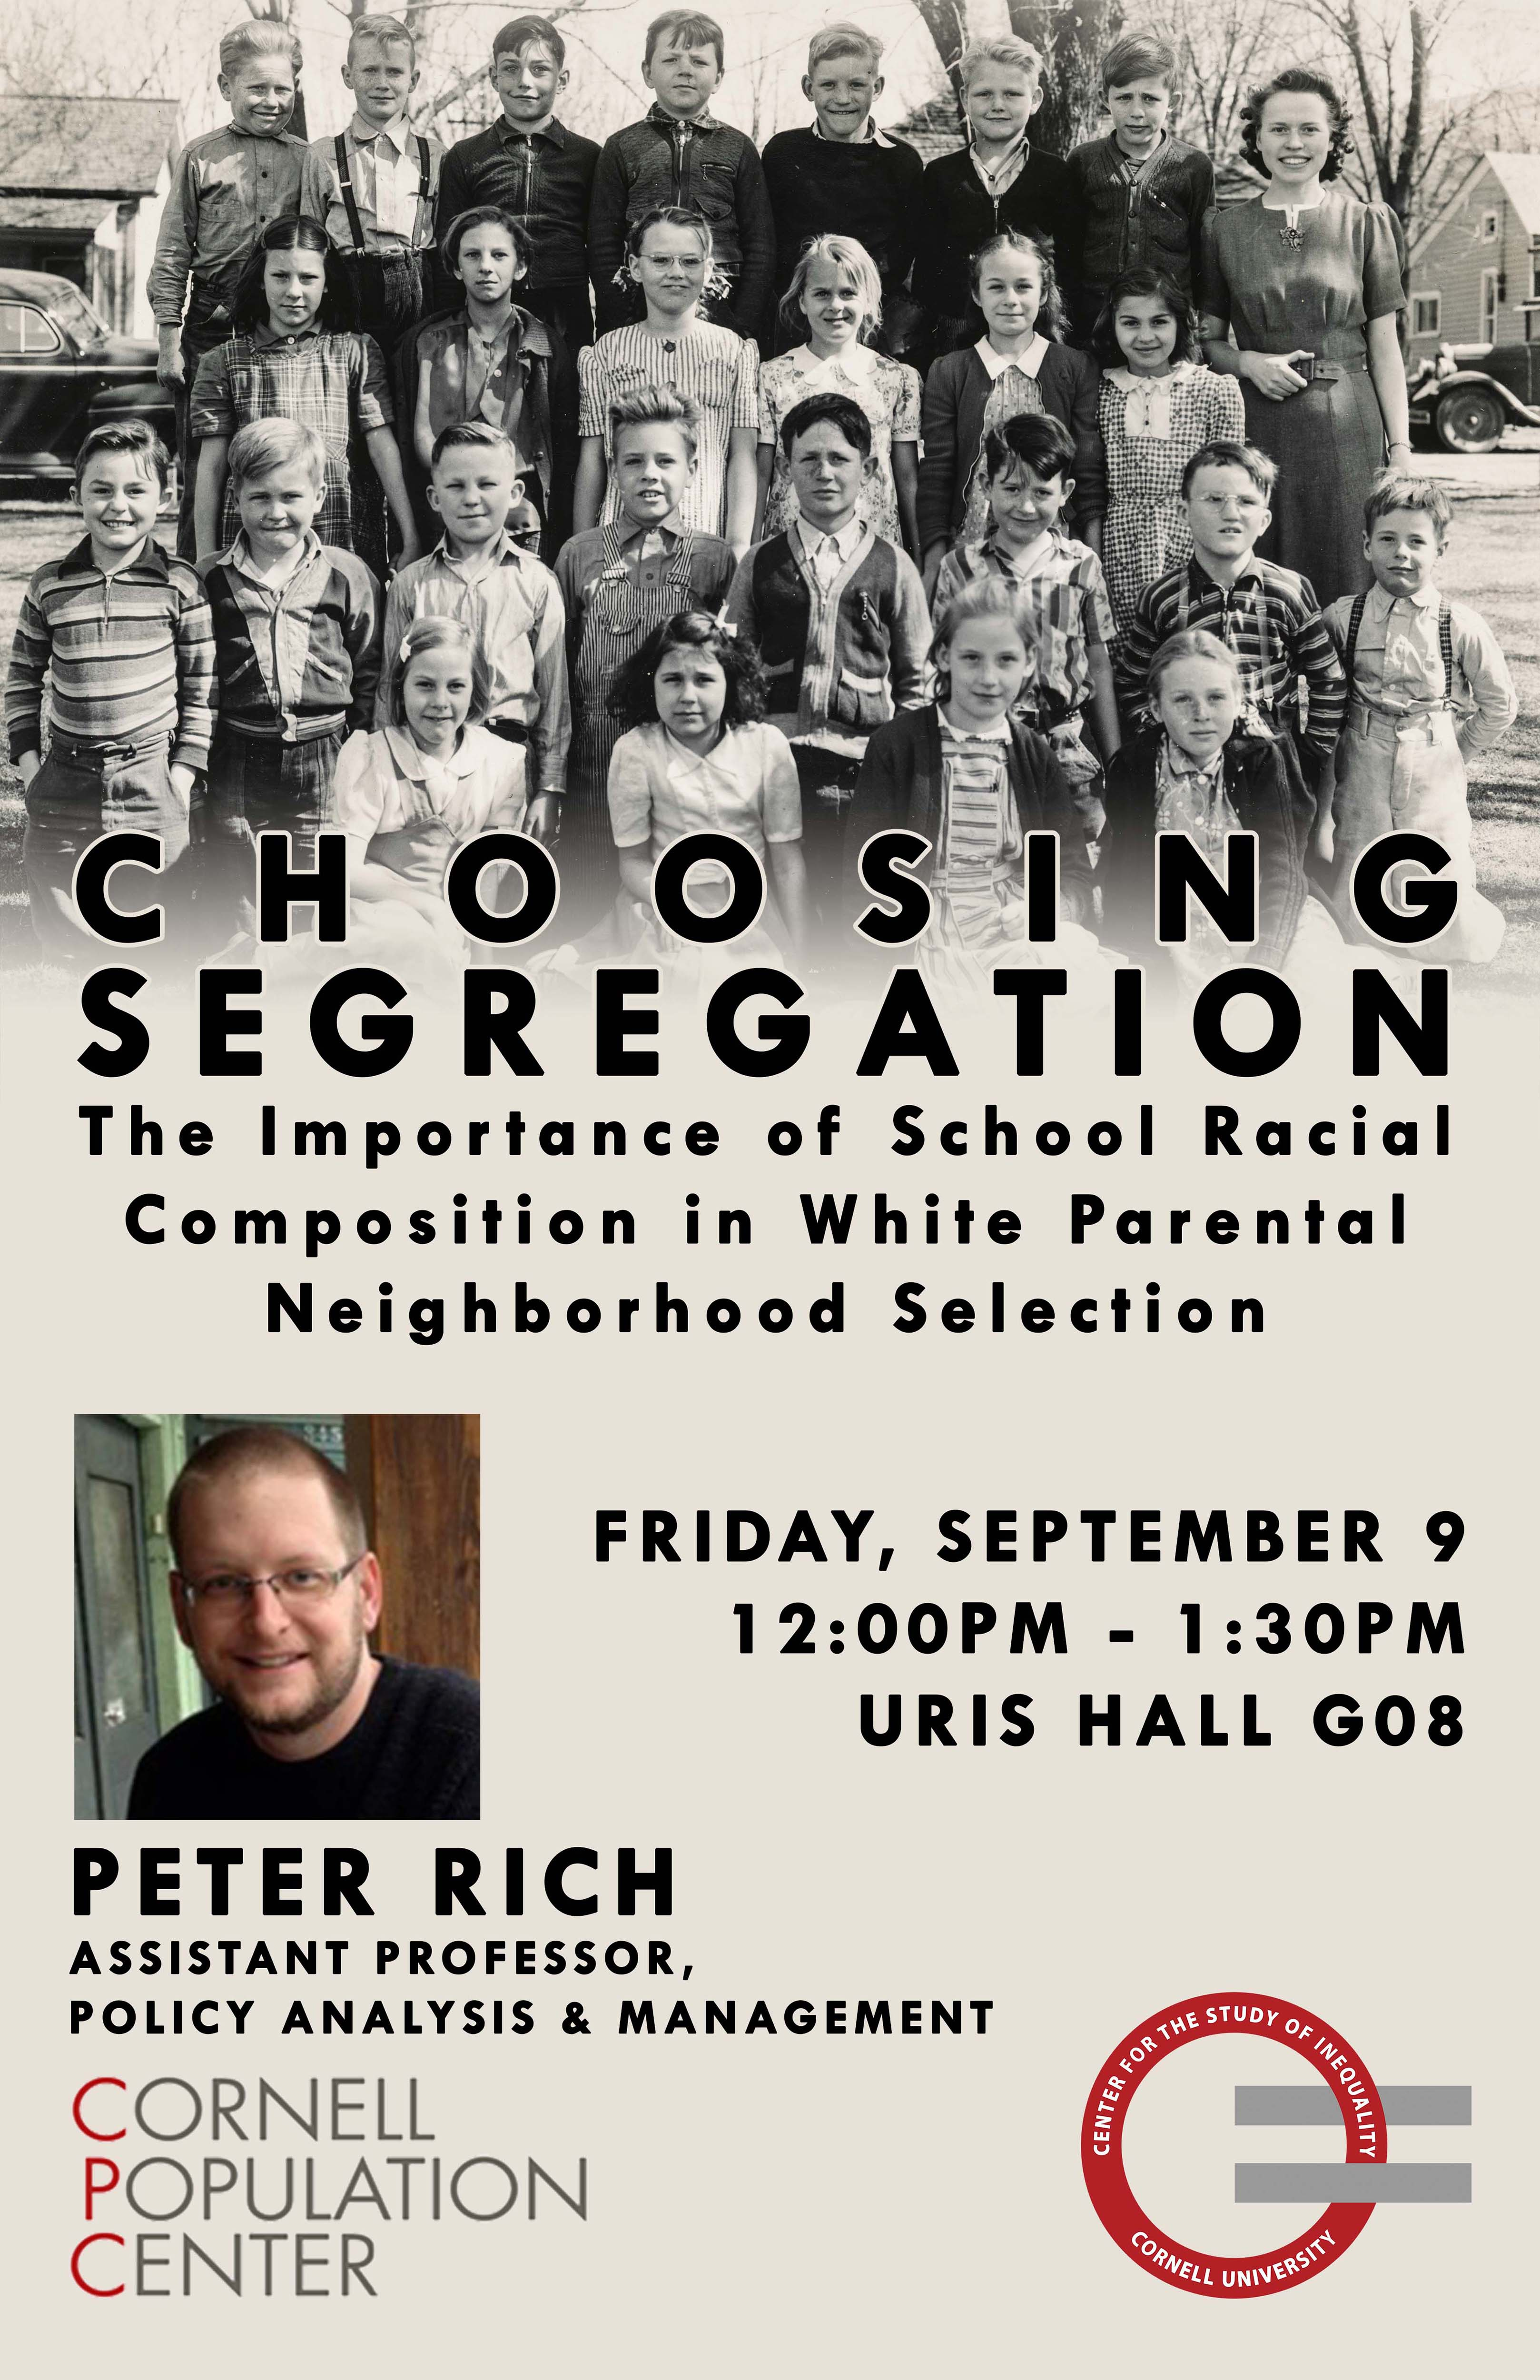 Choosing Segregation: The Importance of School Racial Composition in White Parental Neighborhood Selection